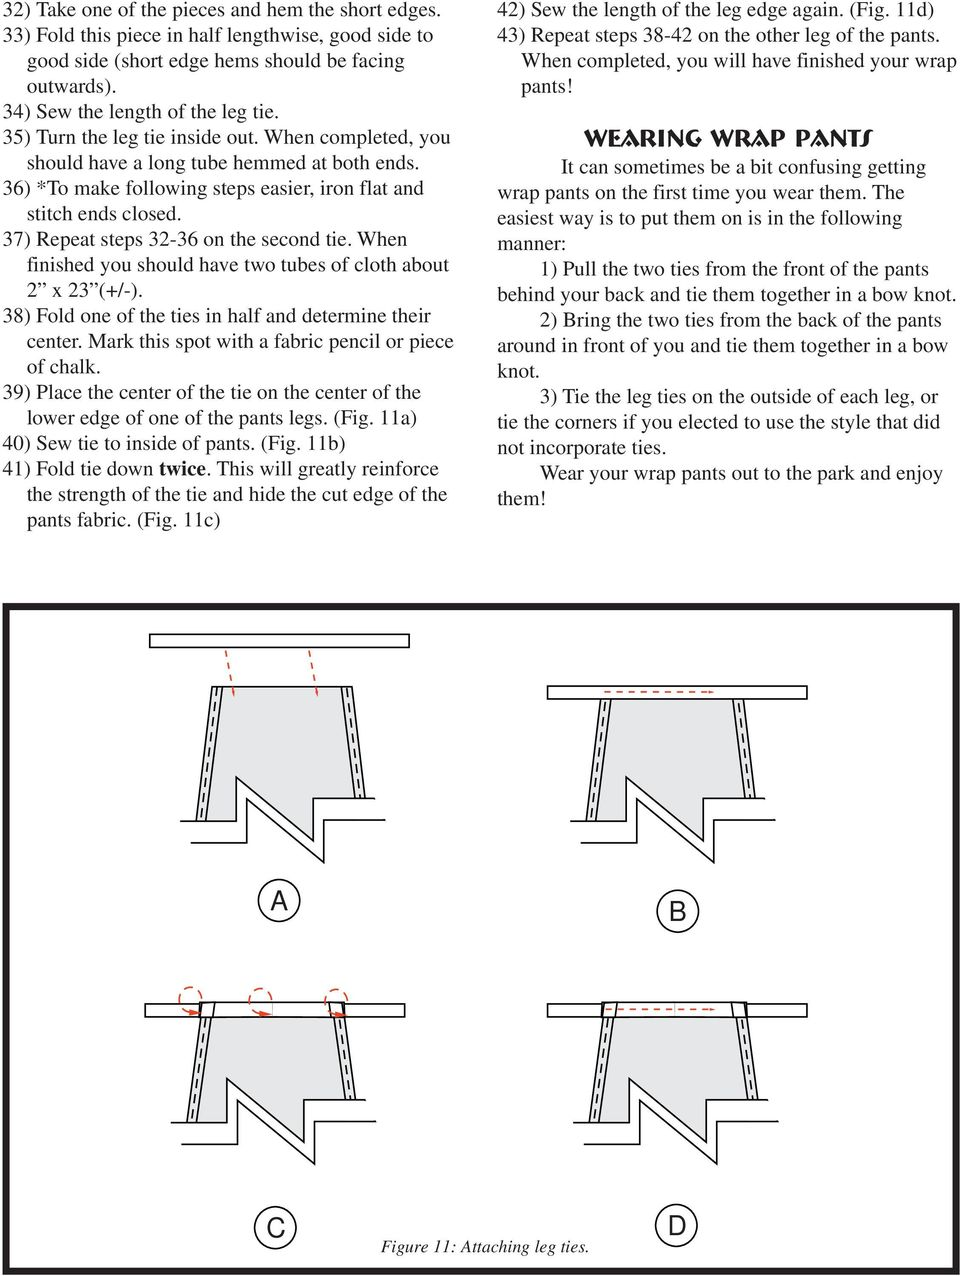 37) Repeat steps 32-36 on the second tie. When finished you should have two tubes of cloth about 2 x 23 (+/-). 38) Fold one of the ties in half and determine their center.